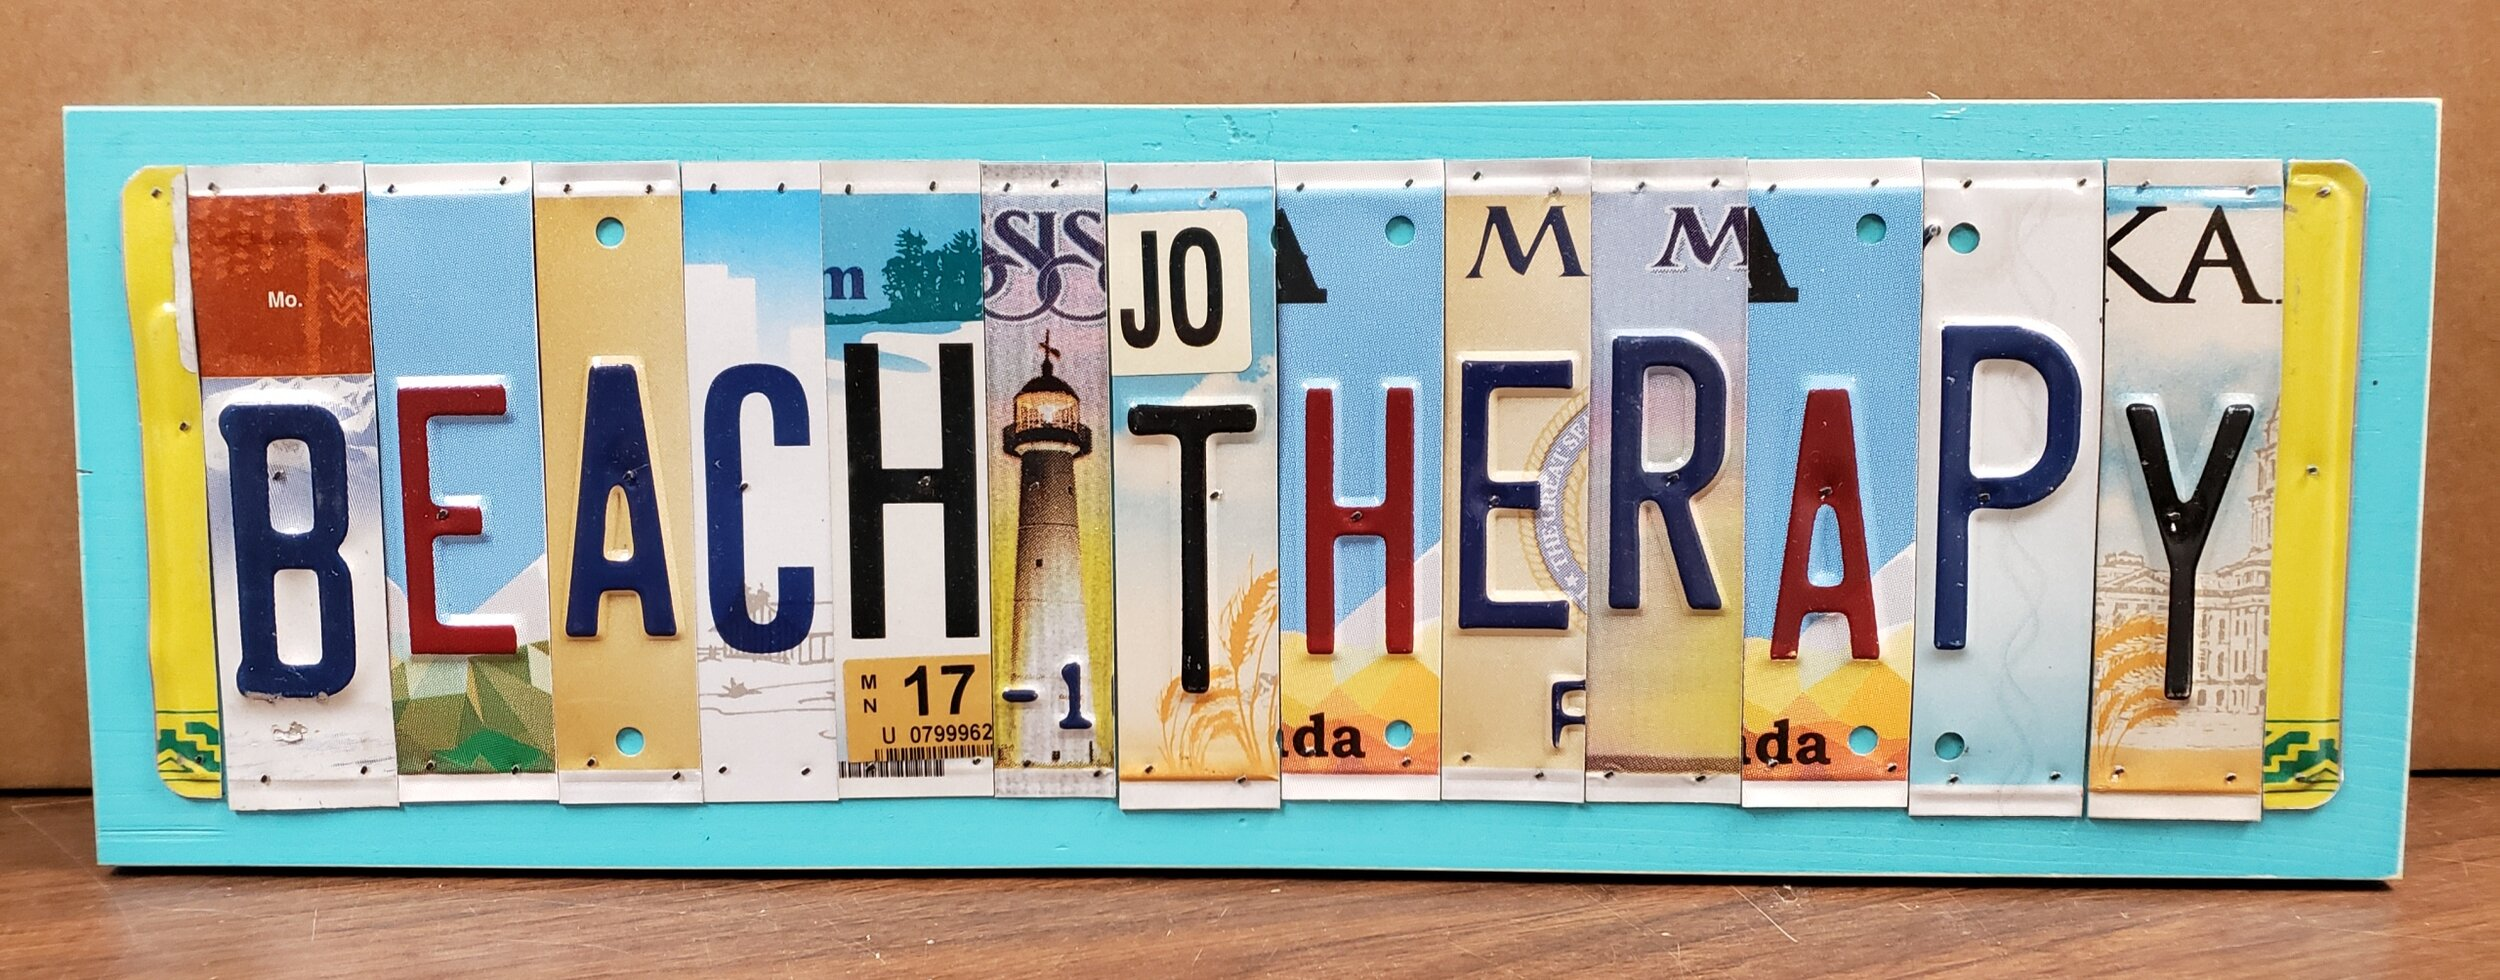 Beach Therapy Upcycled License Plate Wall Art Coastal Magpie